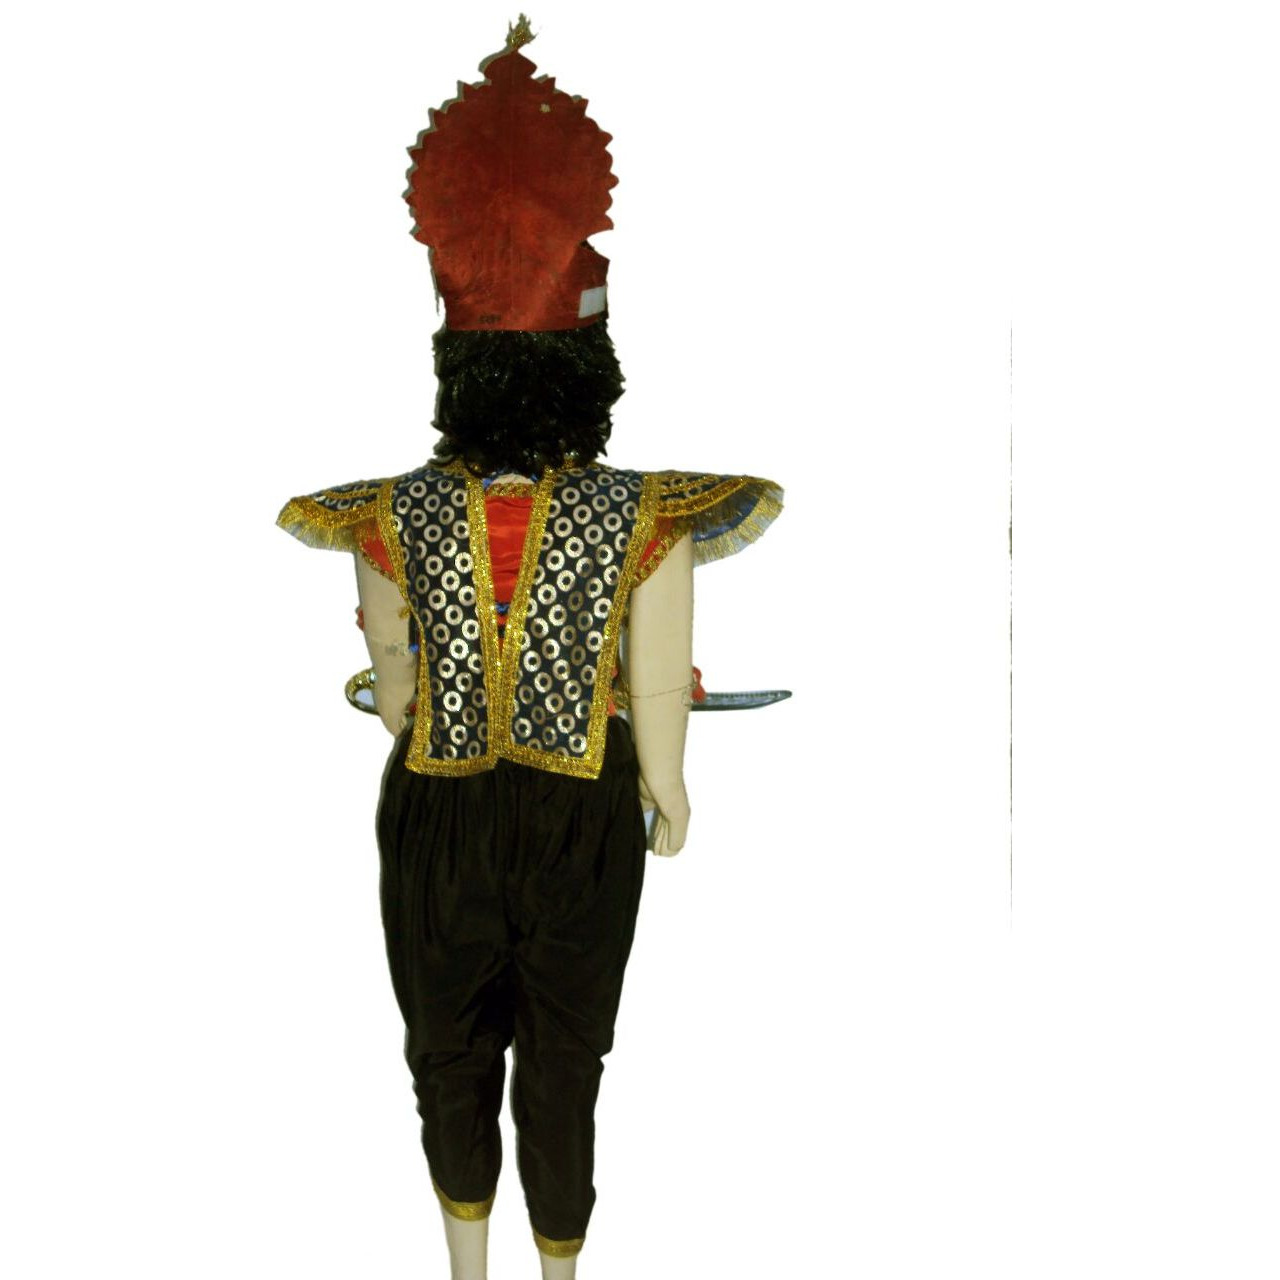 KFD Ravan Kavach fancy dress for kids,Ramleela/Dussehra/Mythological Character for Annual function/Theme Party/Competition/Stage Shows Dress